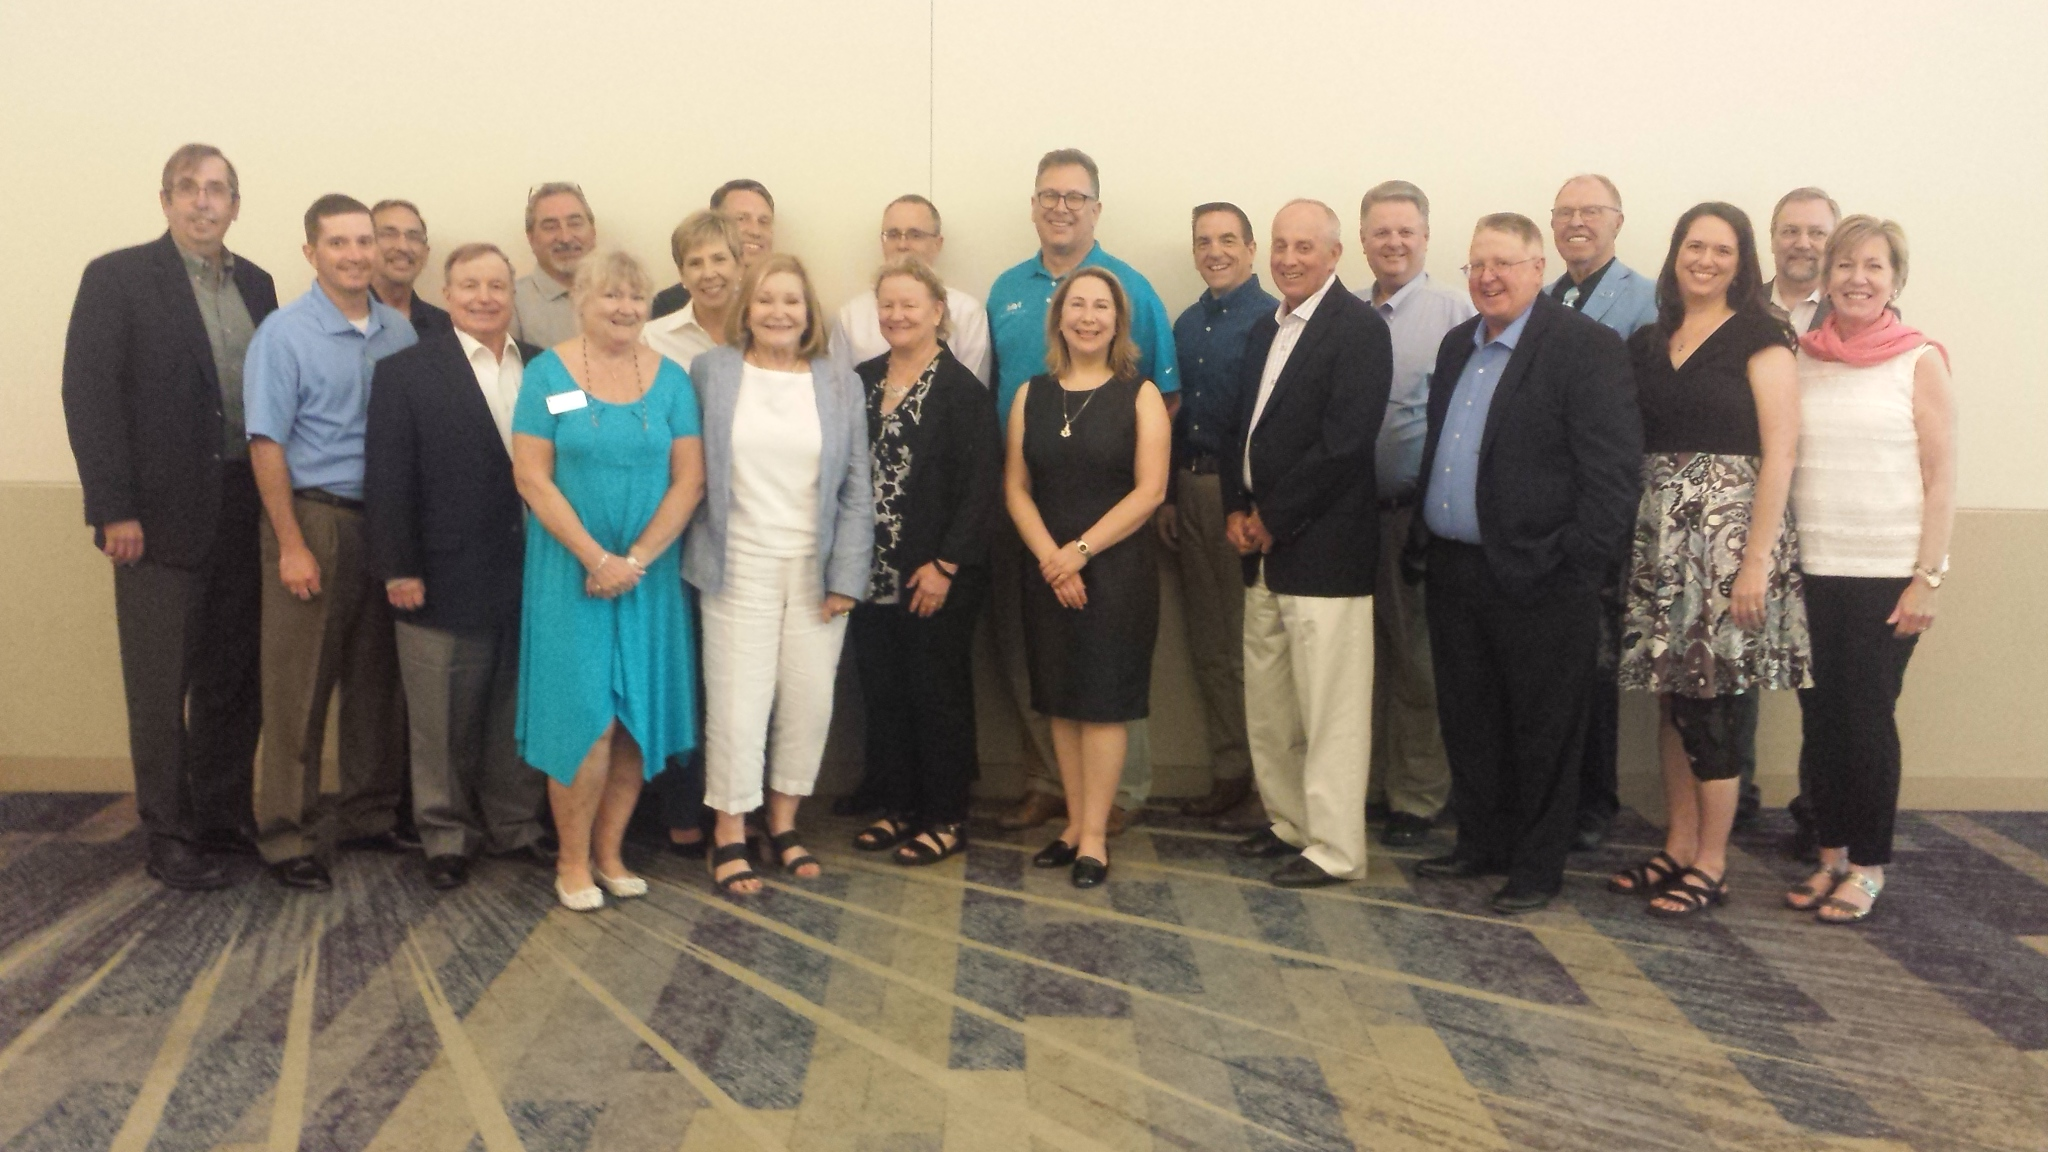 2018 ASFPM Foundation Executive Board of Trustees L-R: Don Mcvoy, Jeff Sparrow, Vince Dicamillo, Bo Temple, Joe Bruno, Diane Brown, Ann Terranova, Tim Hillier, JoAnn Howard, Ceil Strauss, Jerry Sparks, Sam Medlock, Doug Plasencia, Matt Koch, Brad Anderson, Marko Bourne, Dale Lehman, Larry Larson, Elise Ibendahl, Mark Forest and Molly O'Toole. Photo by Michele Mihalovich.